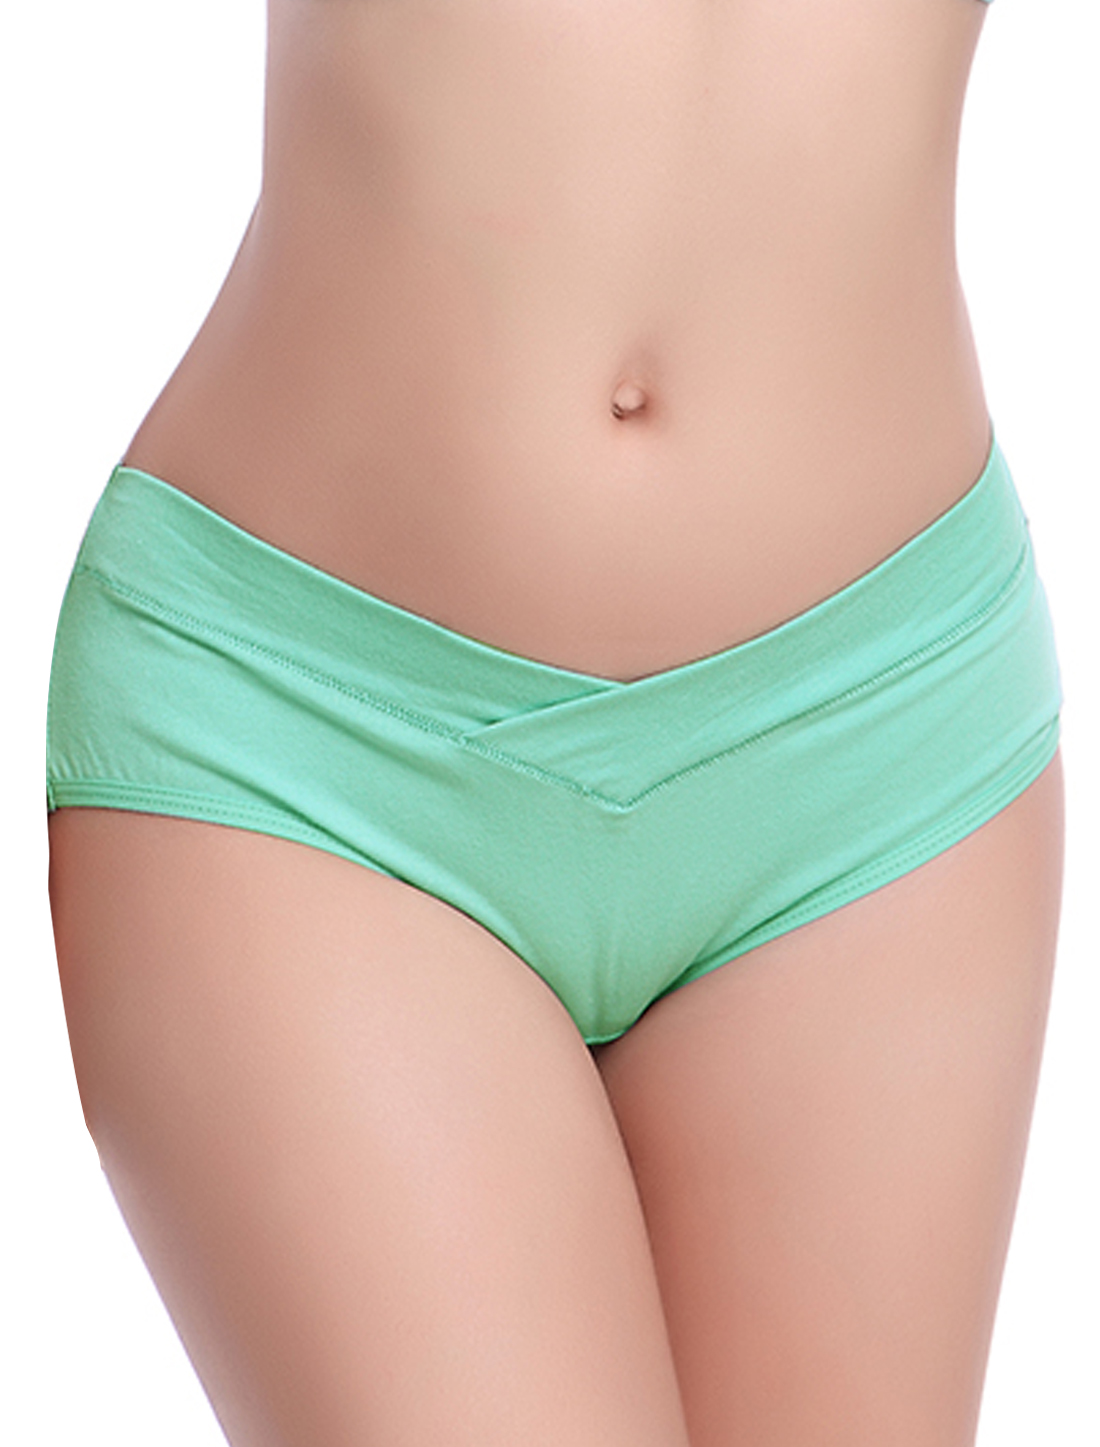 Maternity Crossover Front Design U-Shaped Underpants Briefs Green S